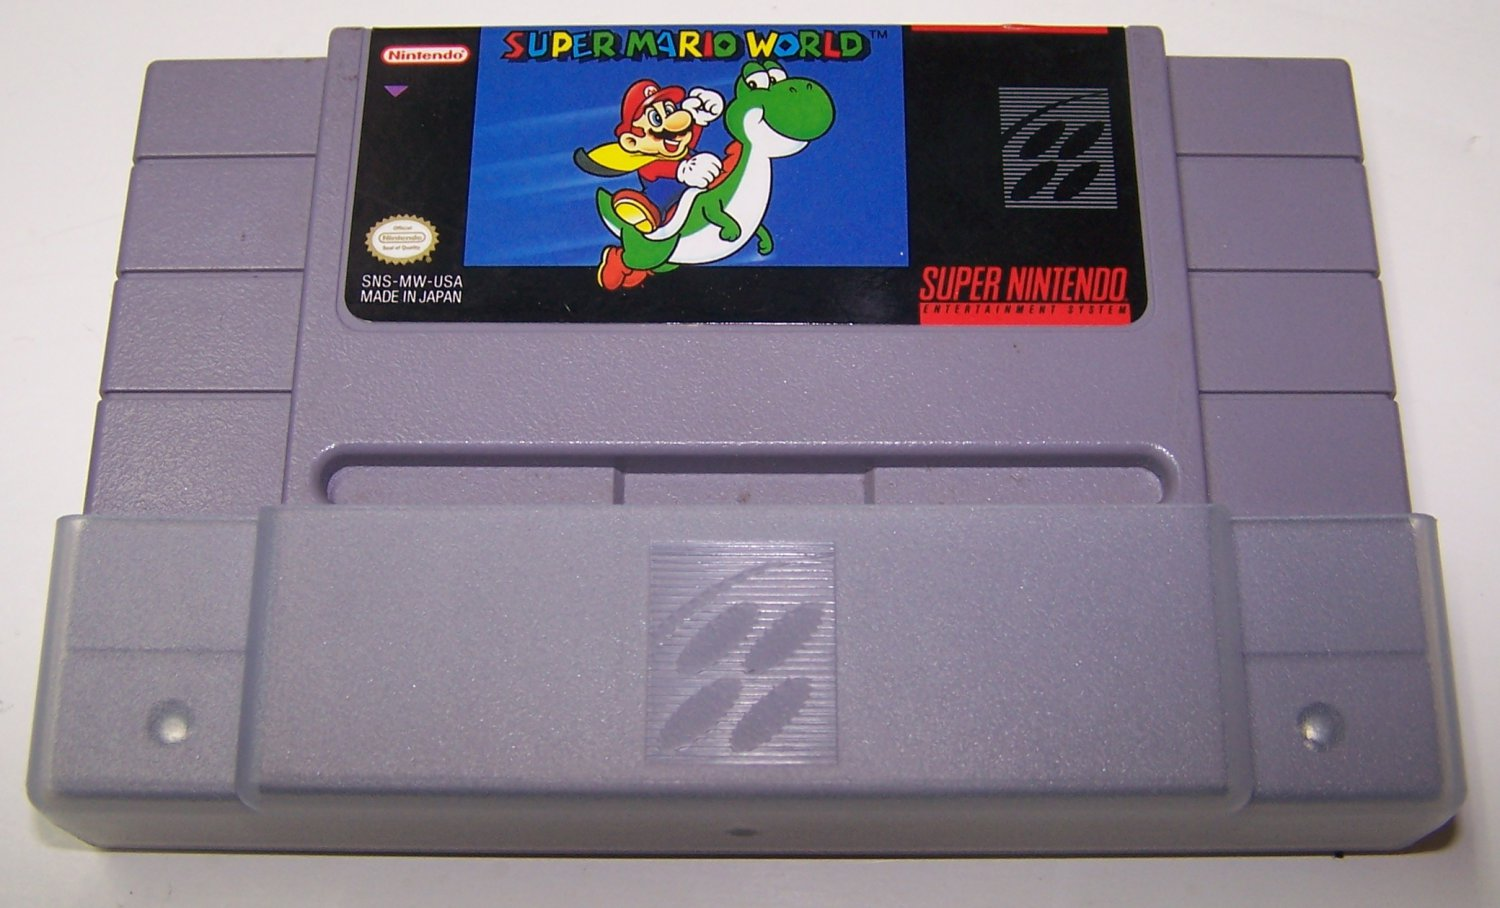 Super Mario World Super Nintendo Game